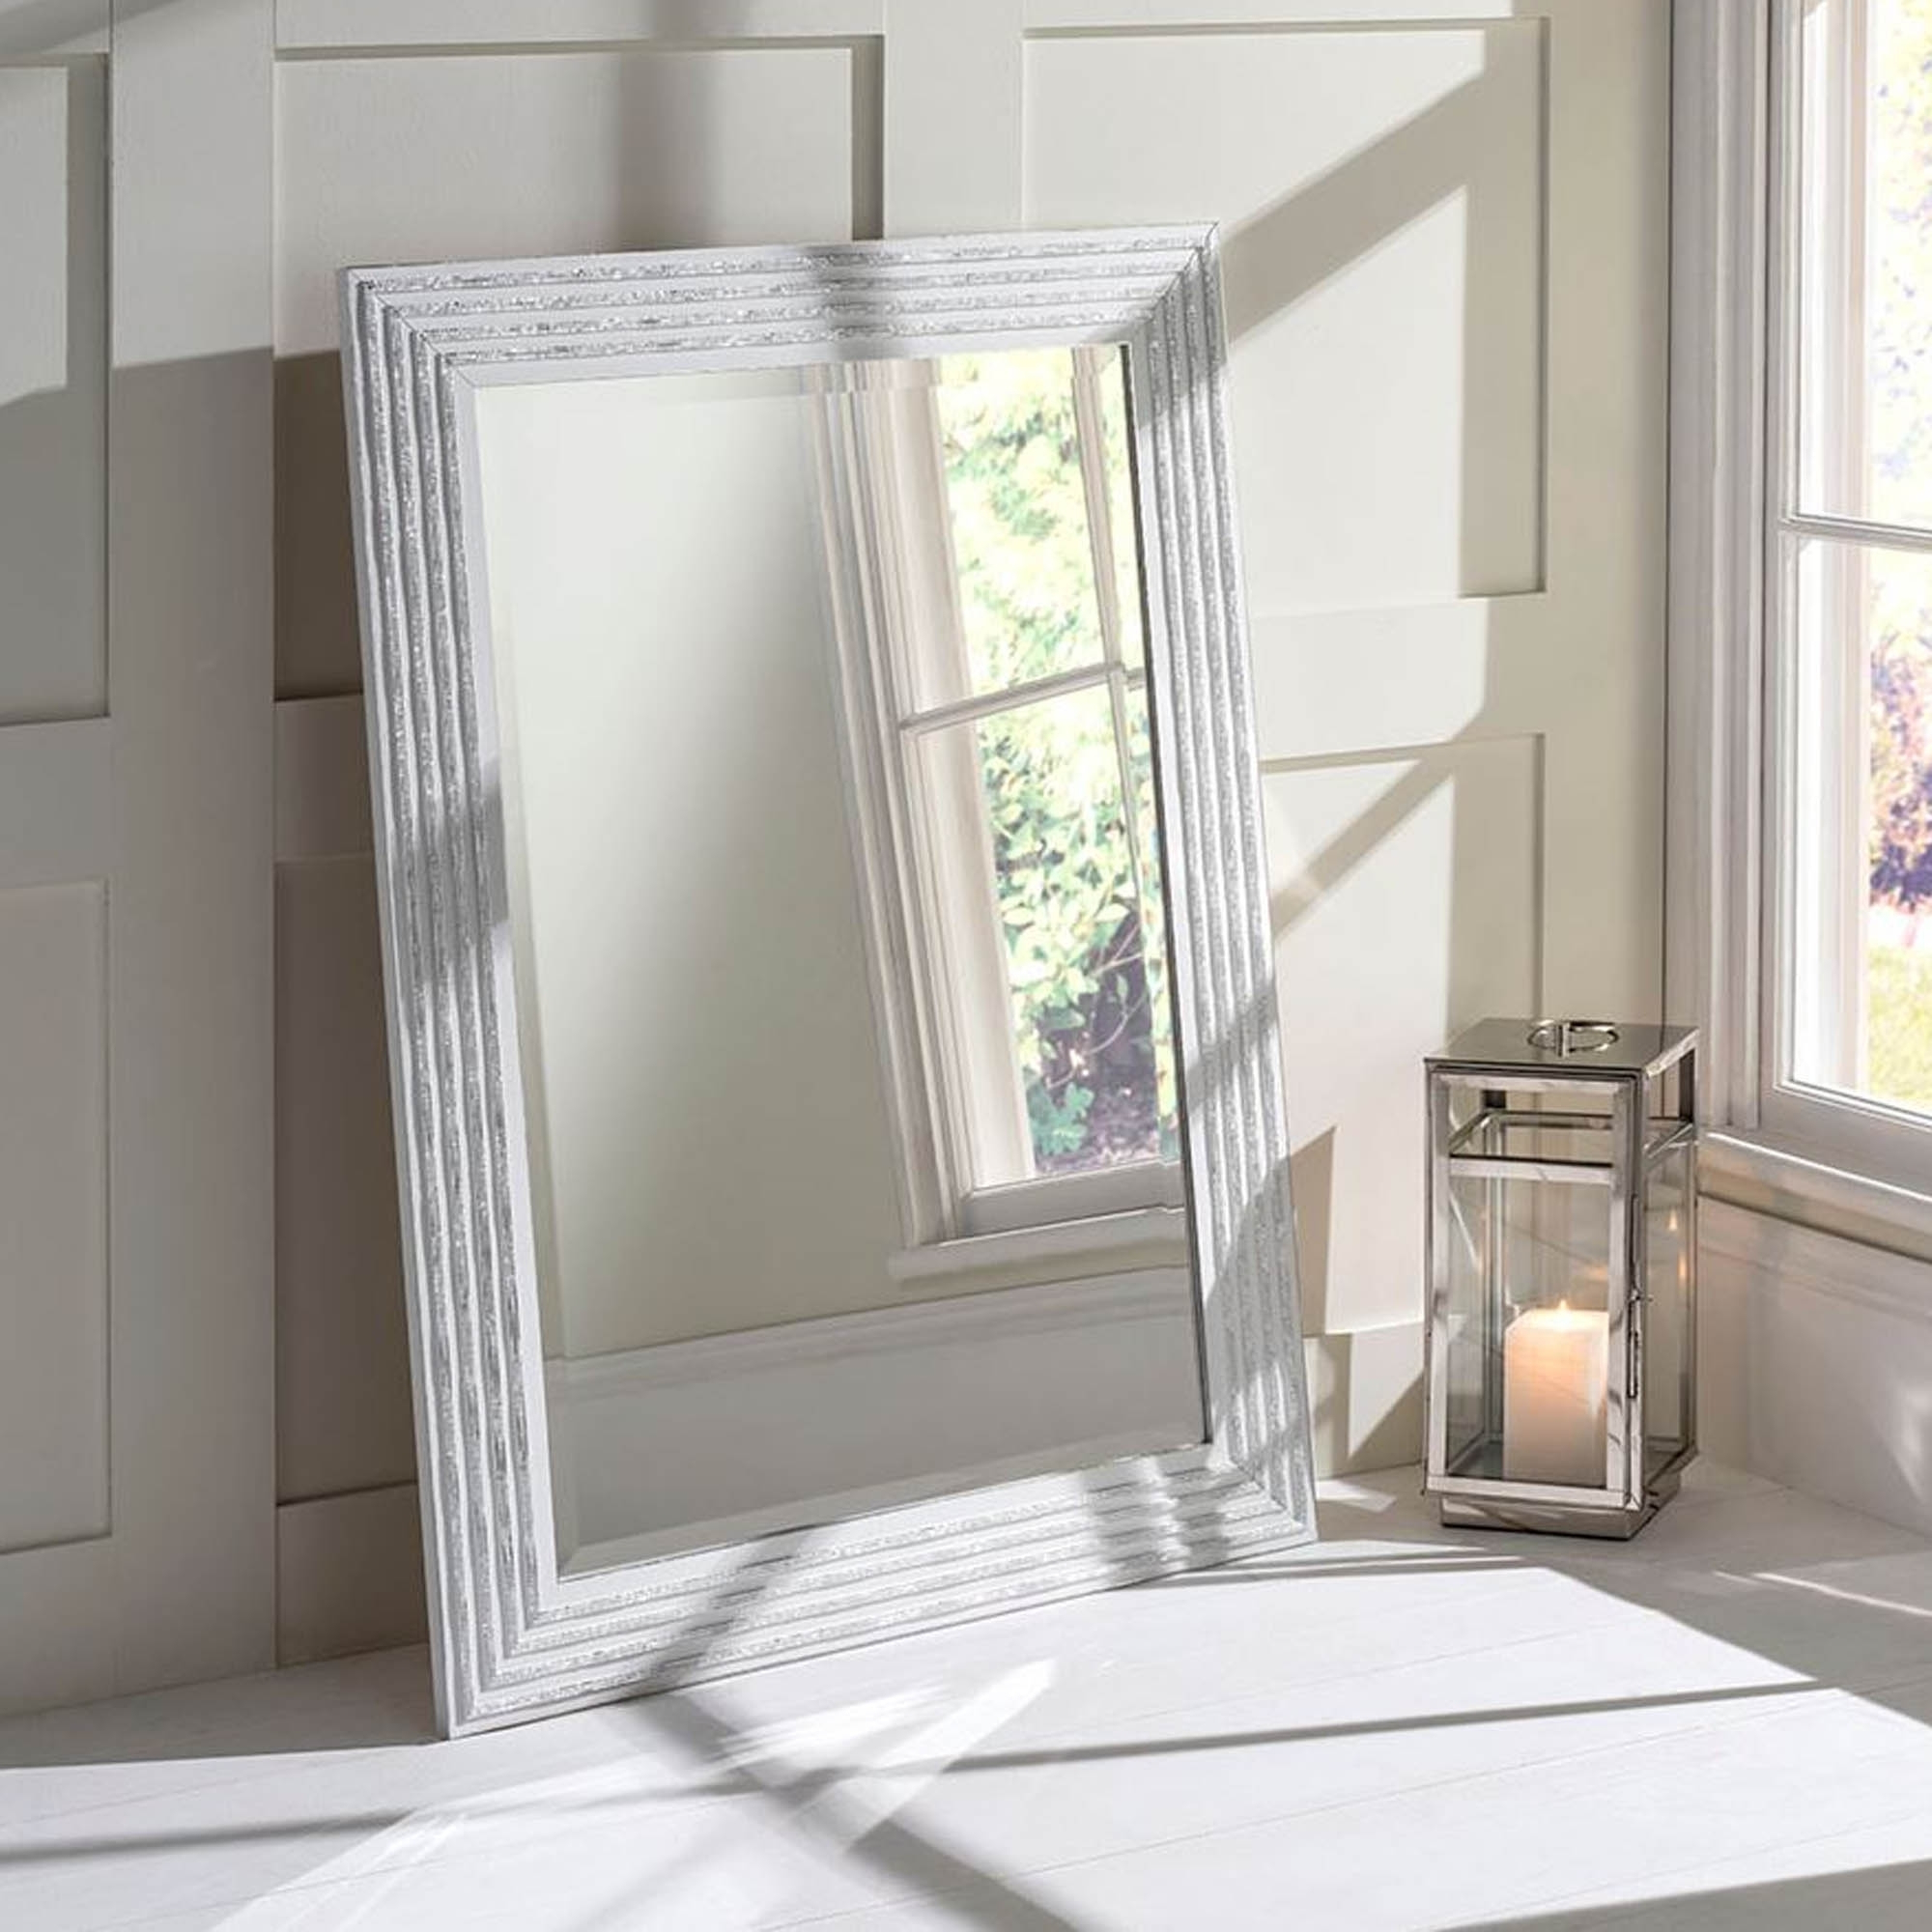 Best And Newest White Decorative Wall Mirrors Inside White And Silver Decorative Wall Mirror (View 13 of 20)